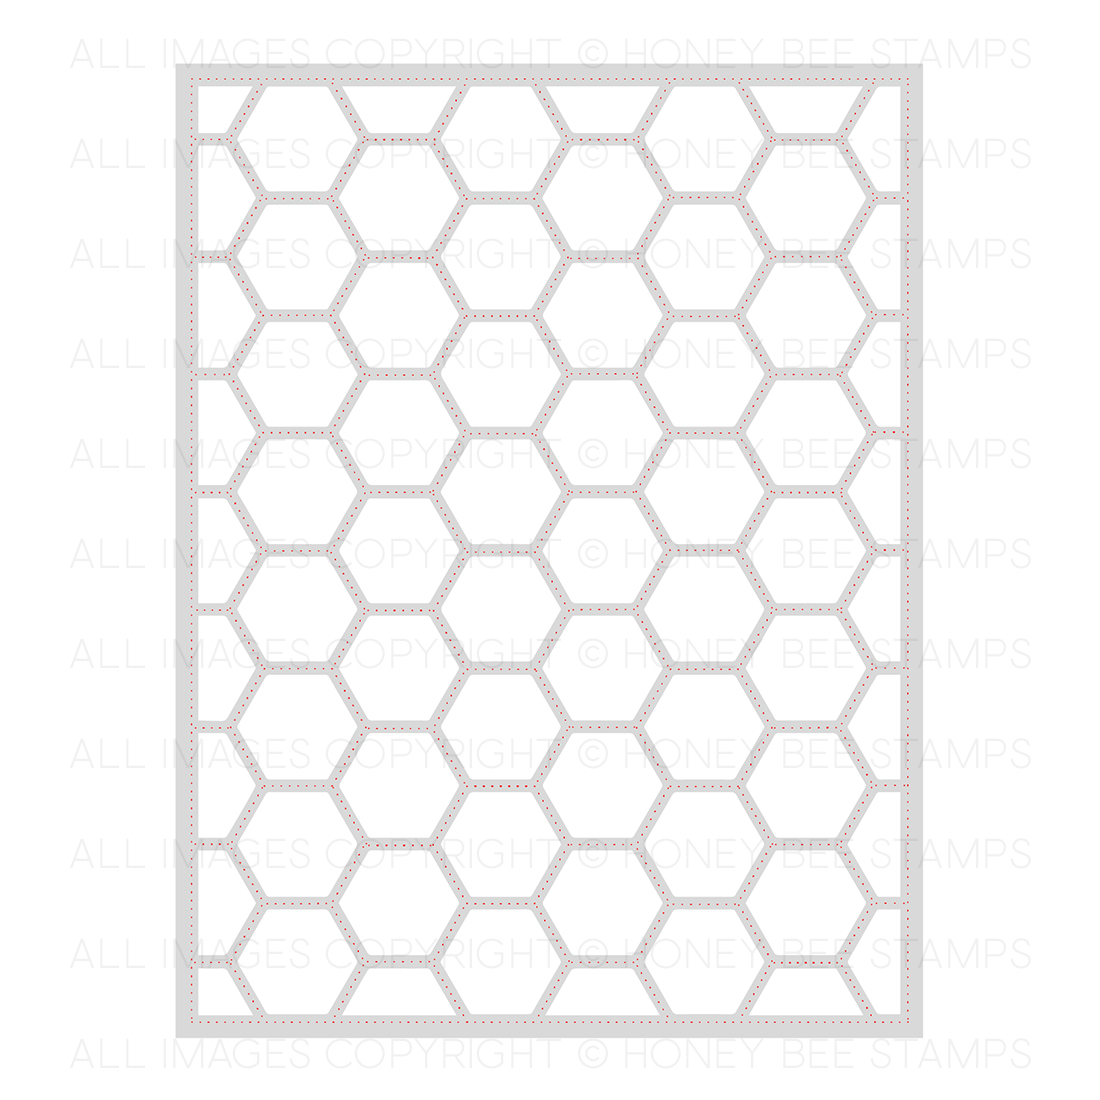 Honeybee Bee Stamps - Hexagon Cover Plate Stipple | Honey Cuts | Steel Craft Dies